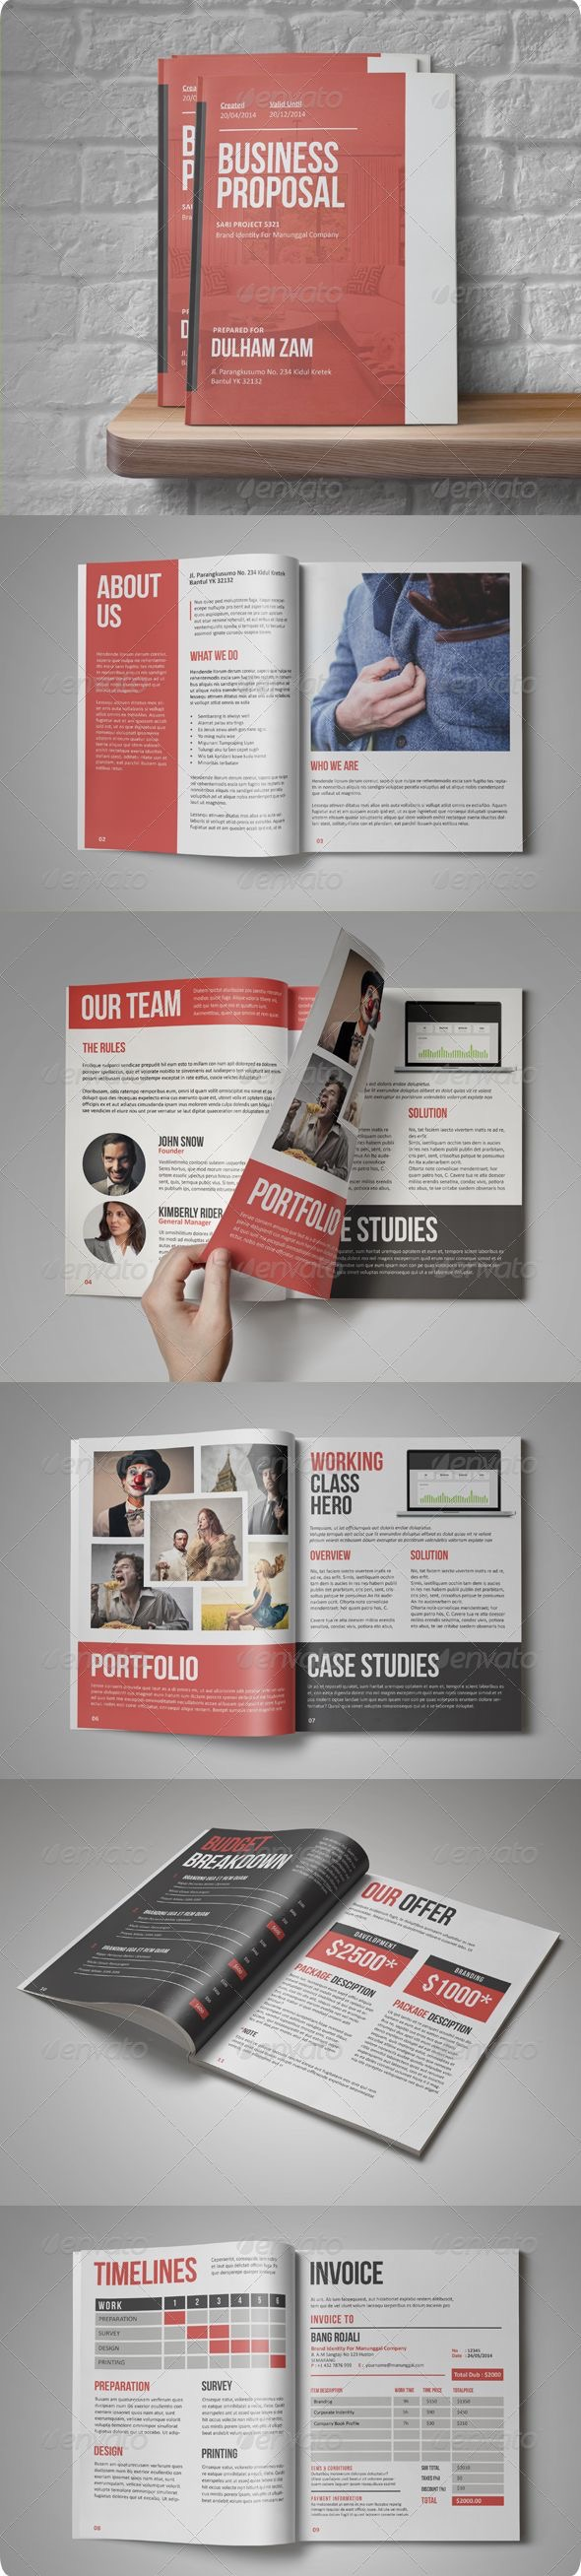 Pin de Karla Morloy en Templates | Pinterest | Diseño editorial ...